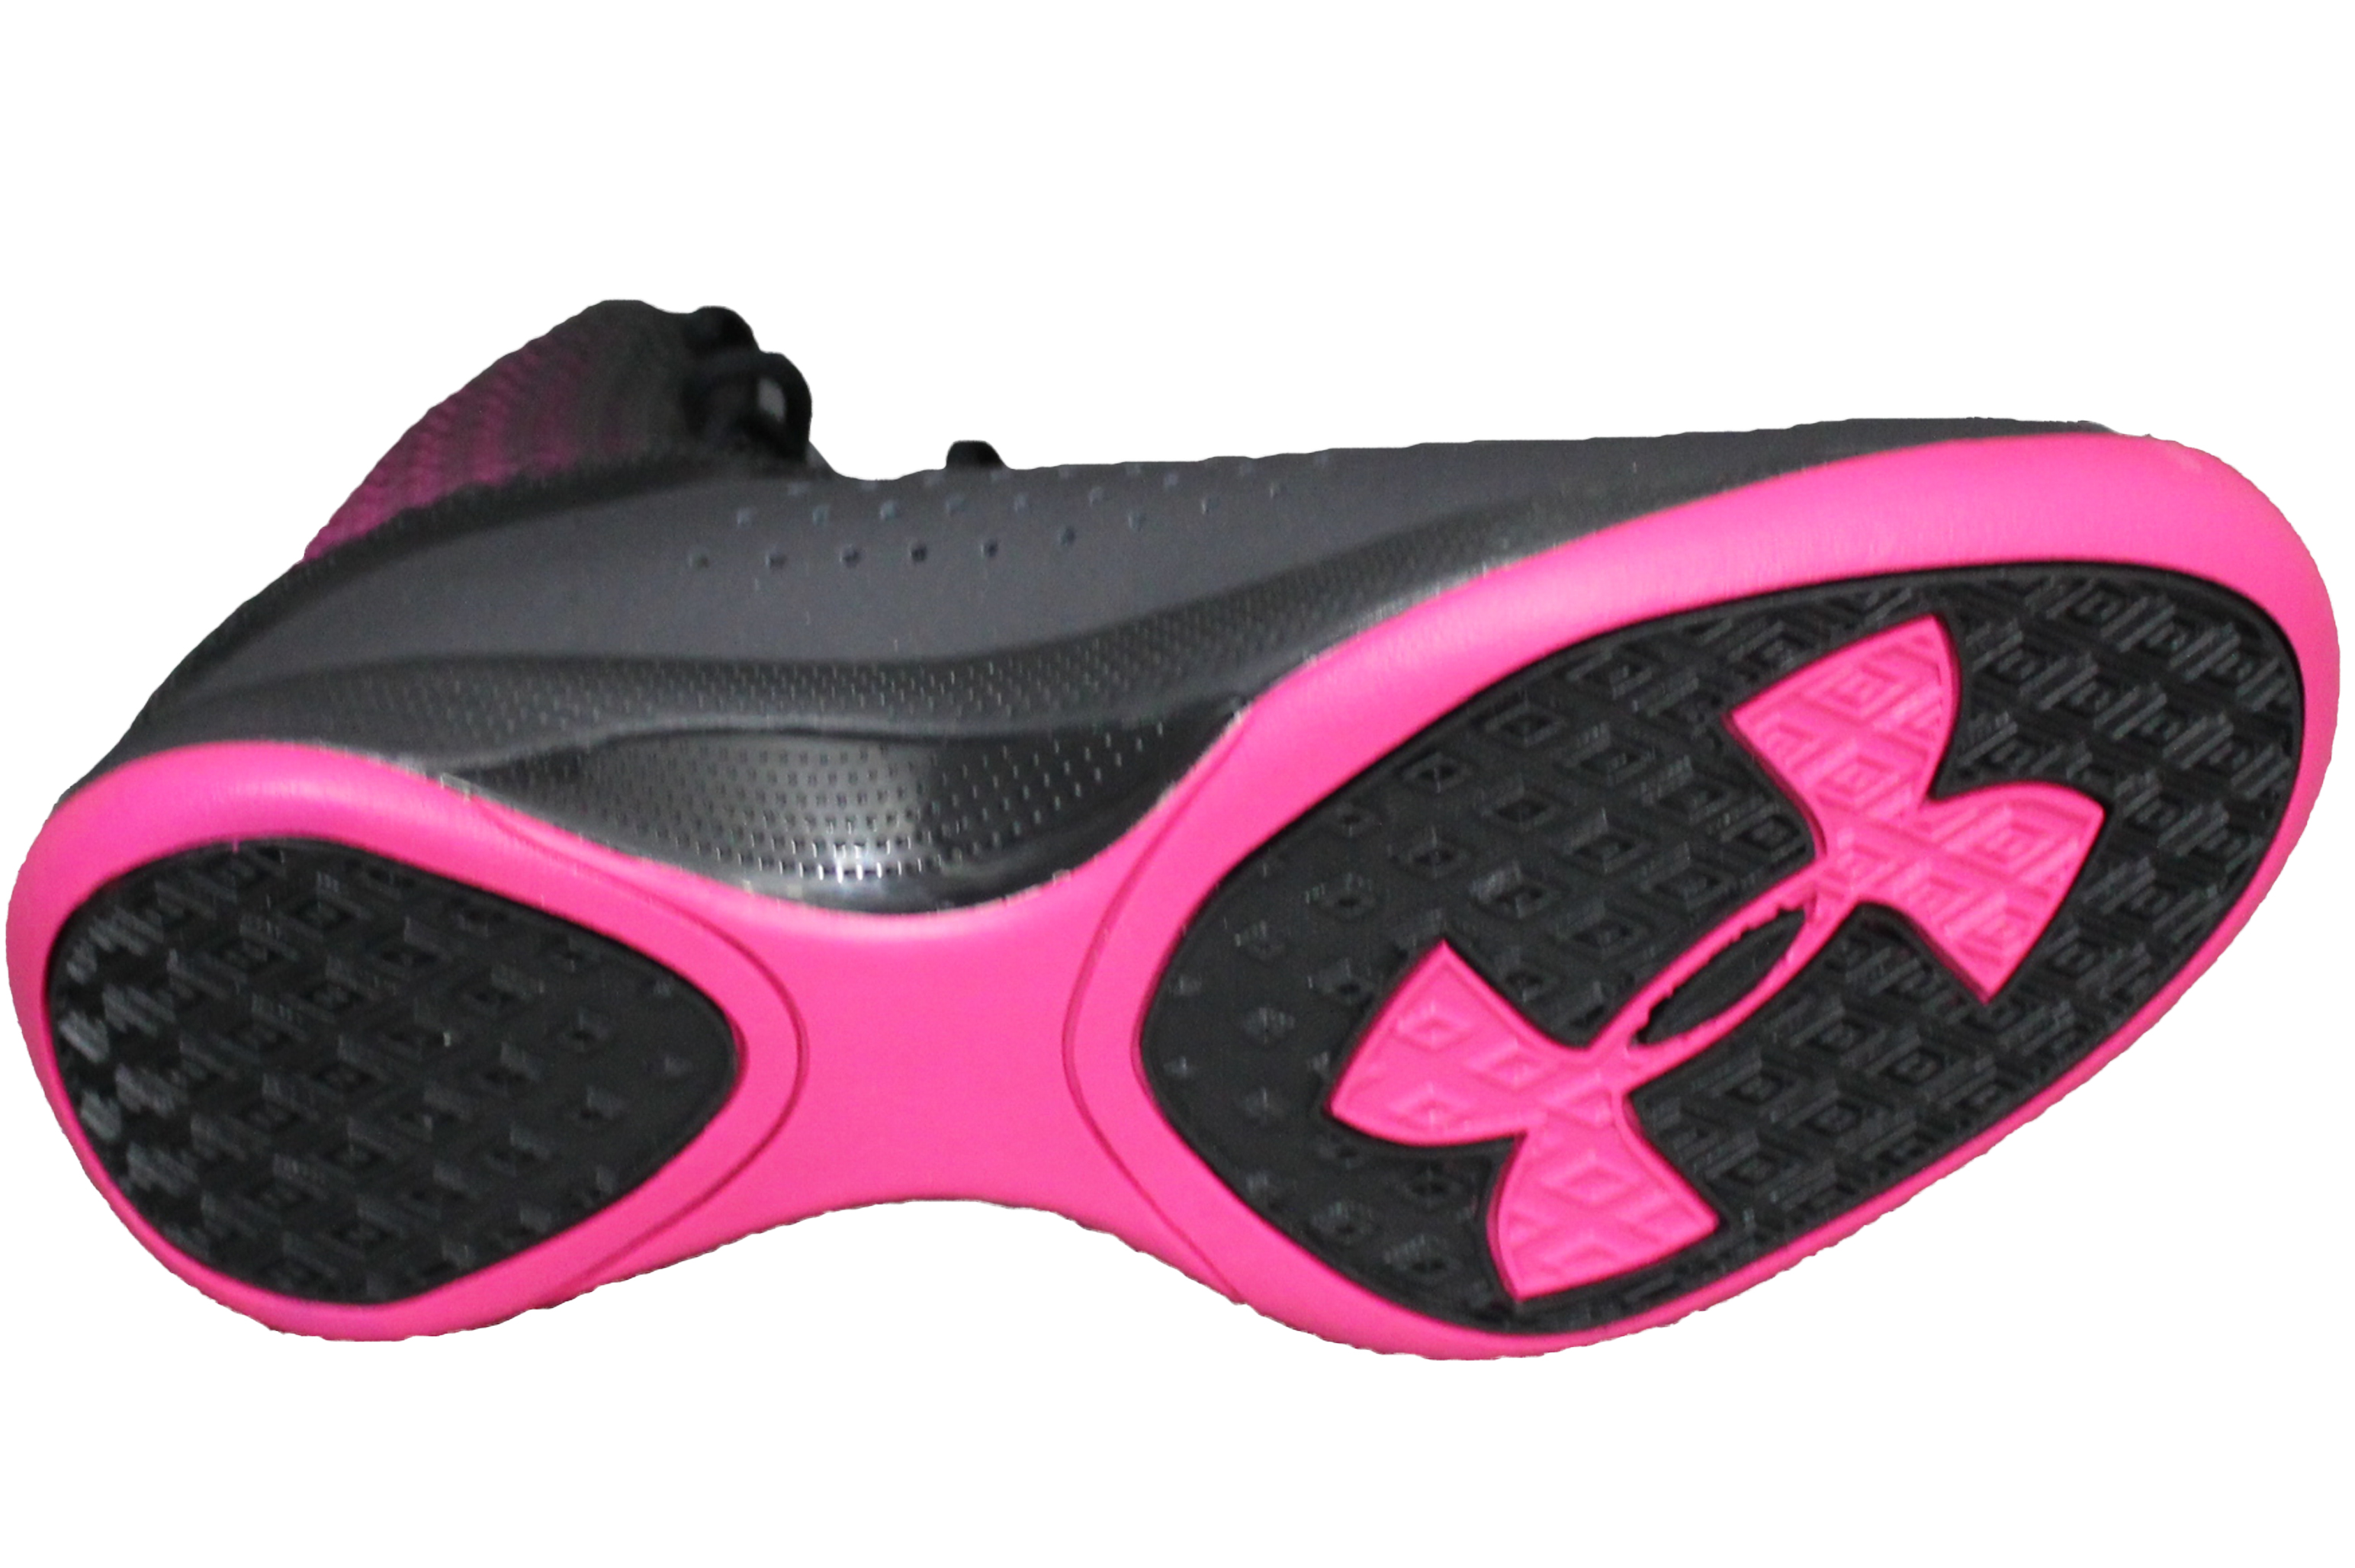 Under Armour Women's Micro G Torch